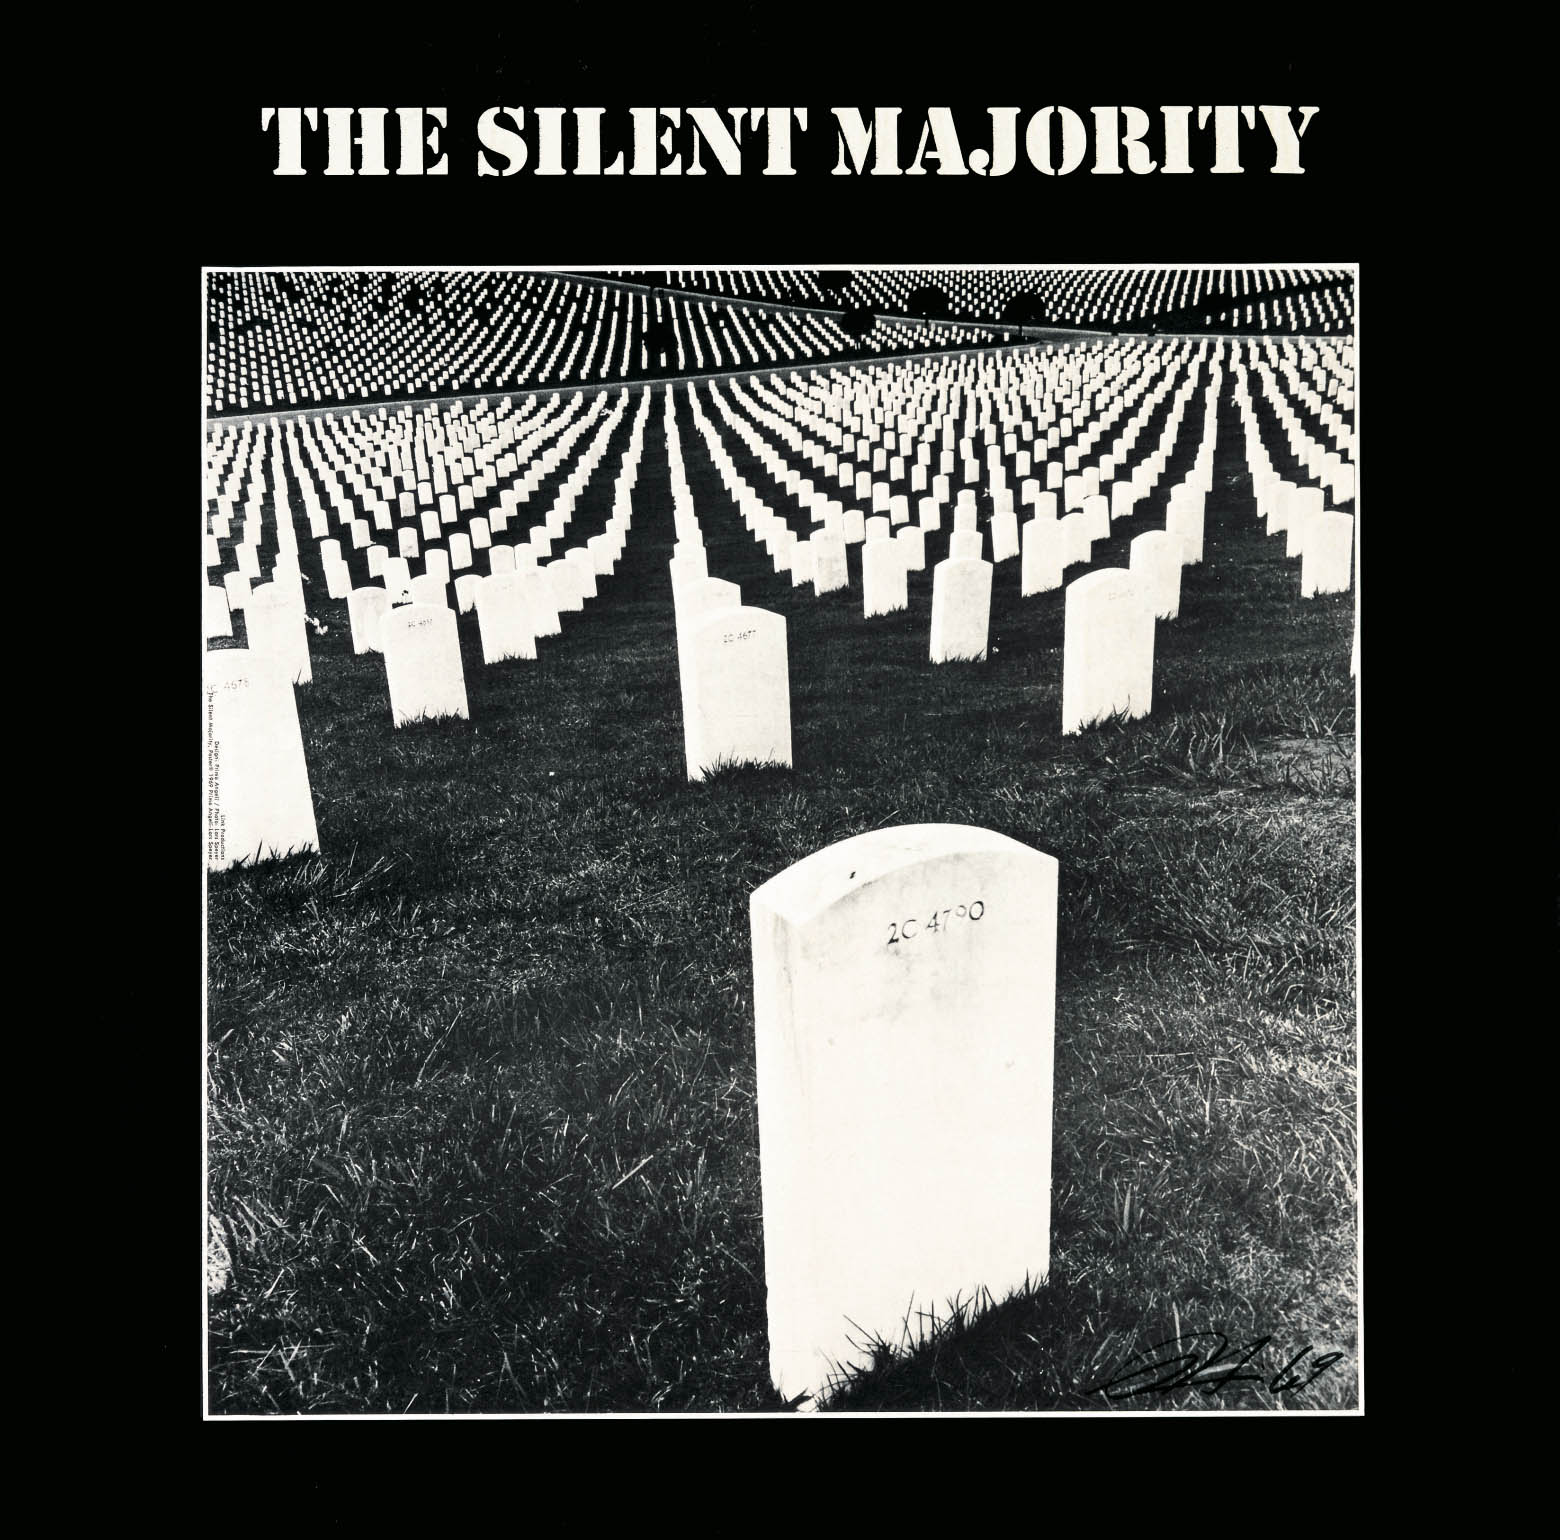 The Silent Majority, 1969. ARTWORK BY PRIMO ANGELI.